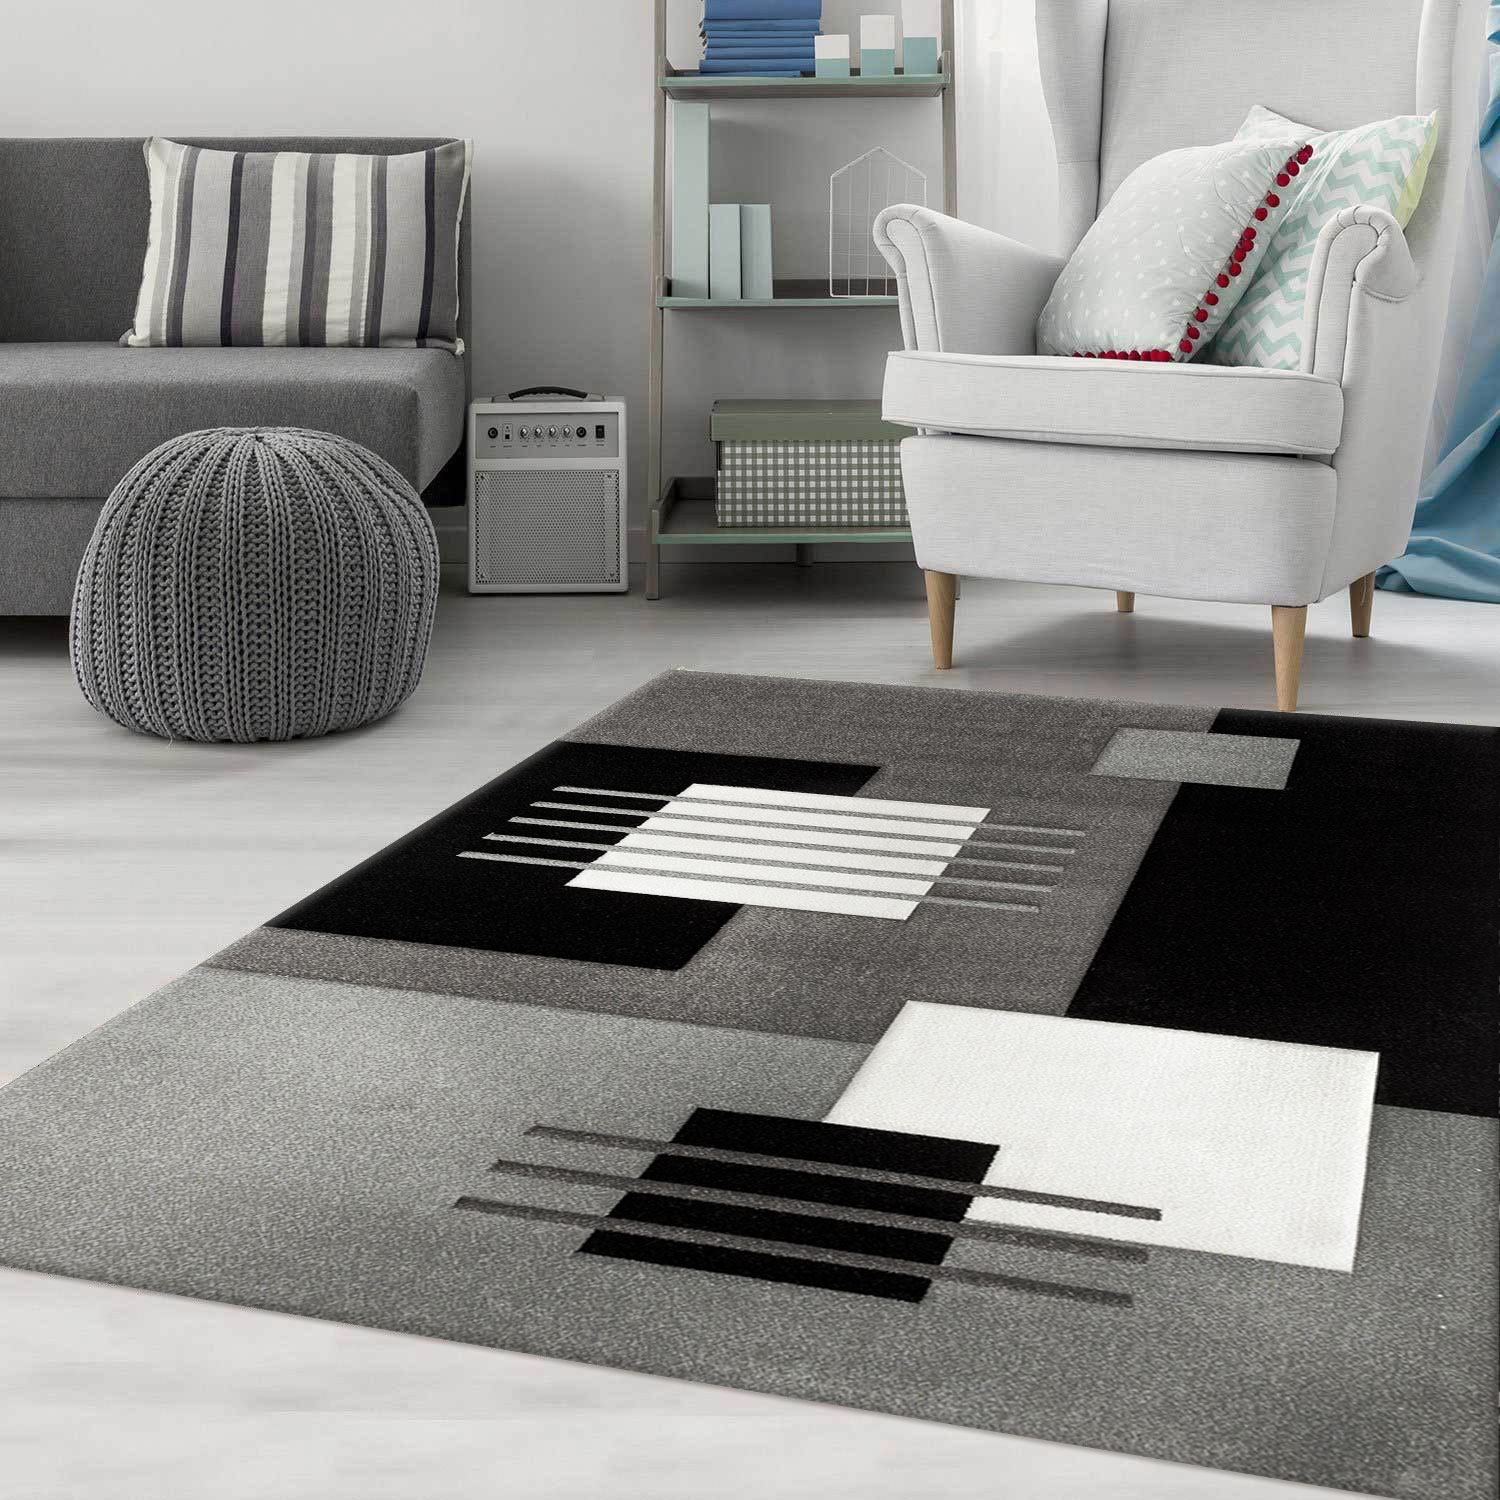 Living and Bedroom Rug Modern Design Carpet in Square Patterns With Defined  Contours in Grey - CP6081